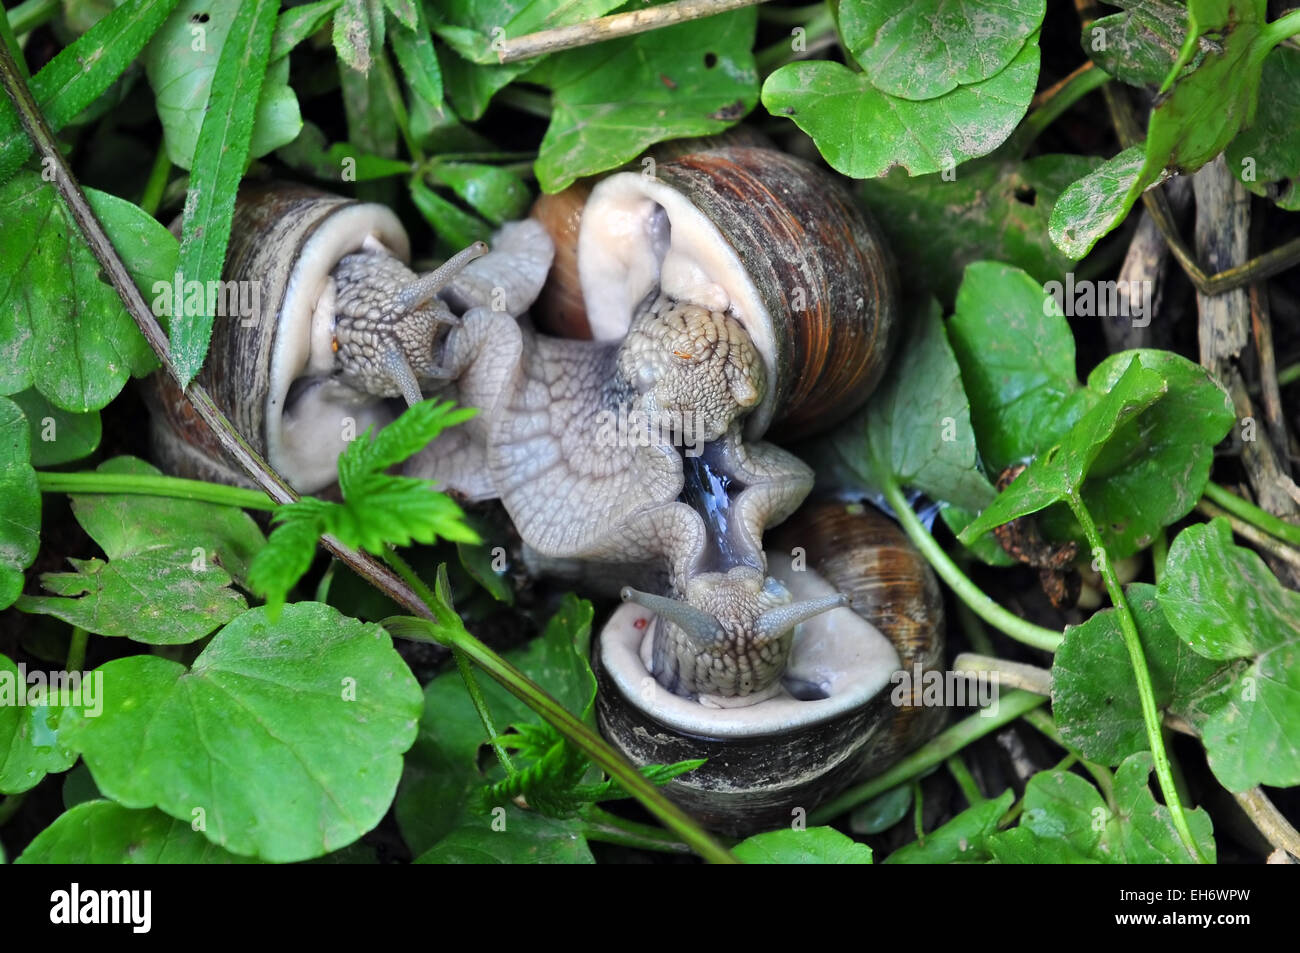 Three snails mating - Stock Image